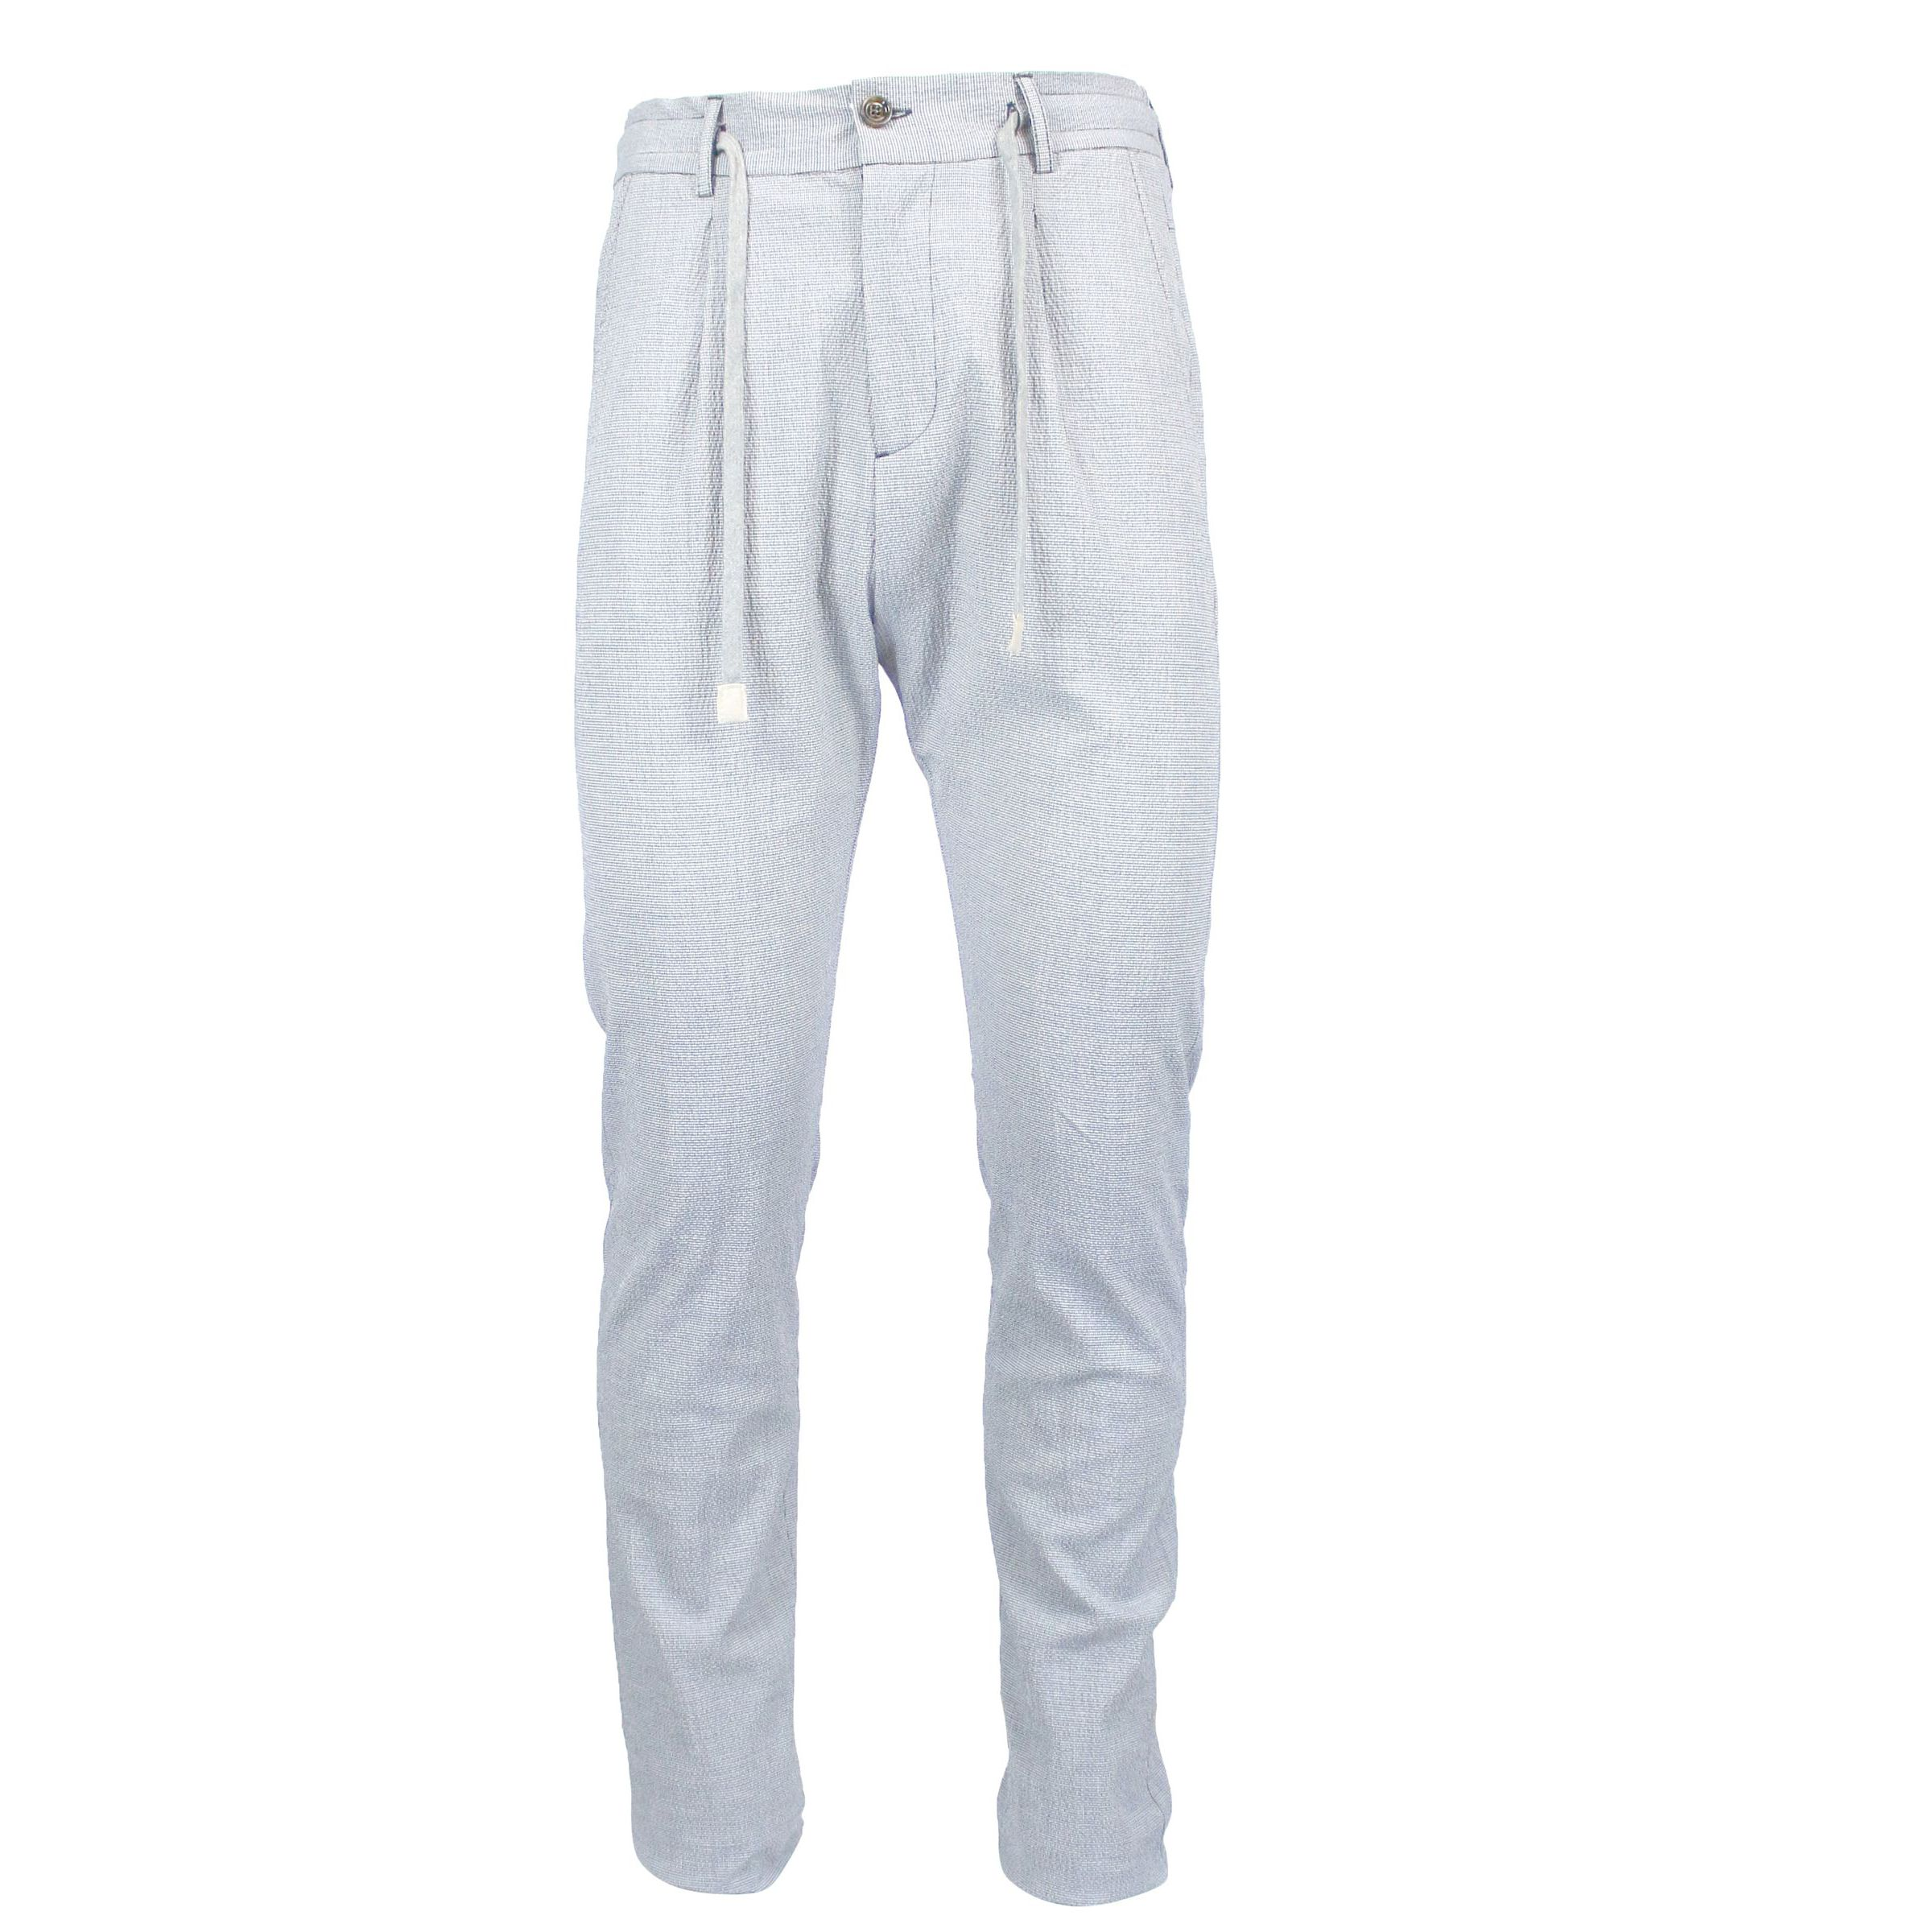 63a8a10a Jogging trousers with america pockets Blue, ELEVENTY pa0252 jac27059 ...